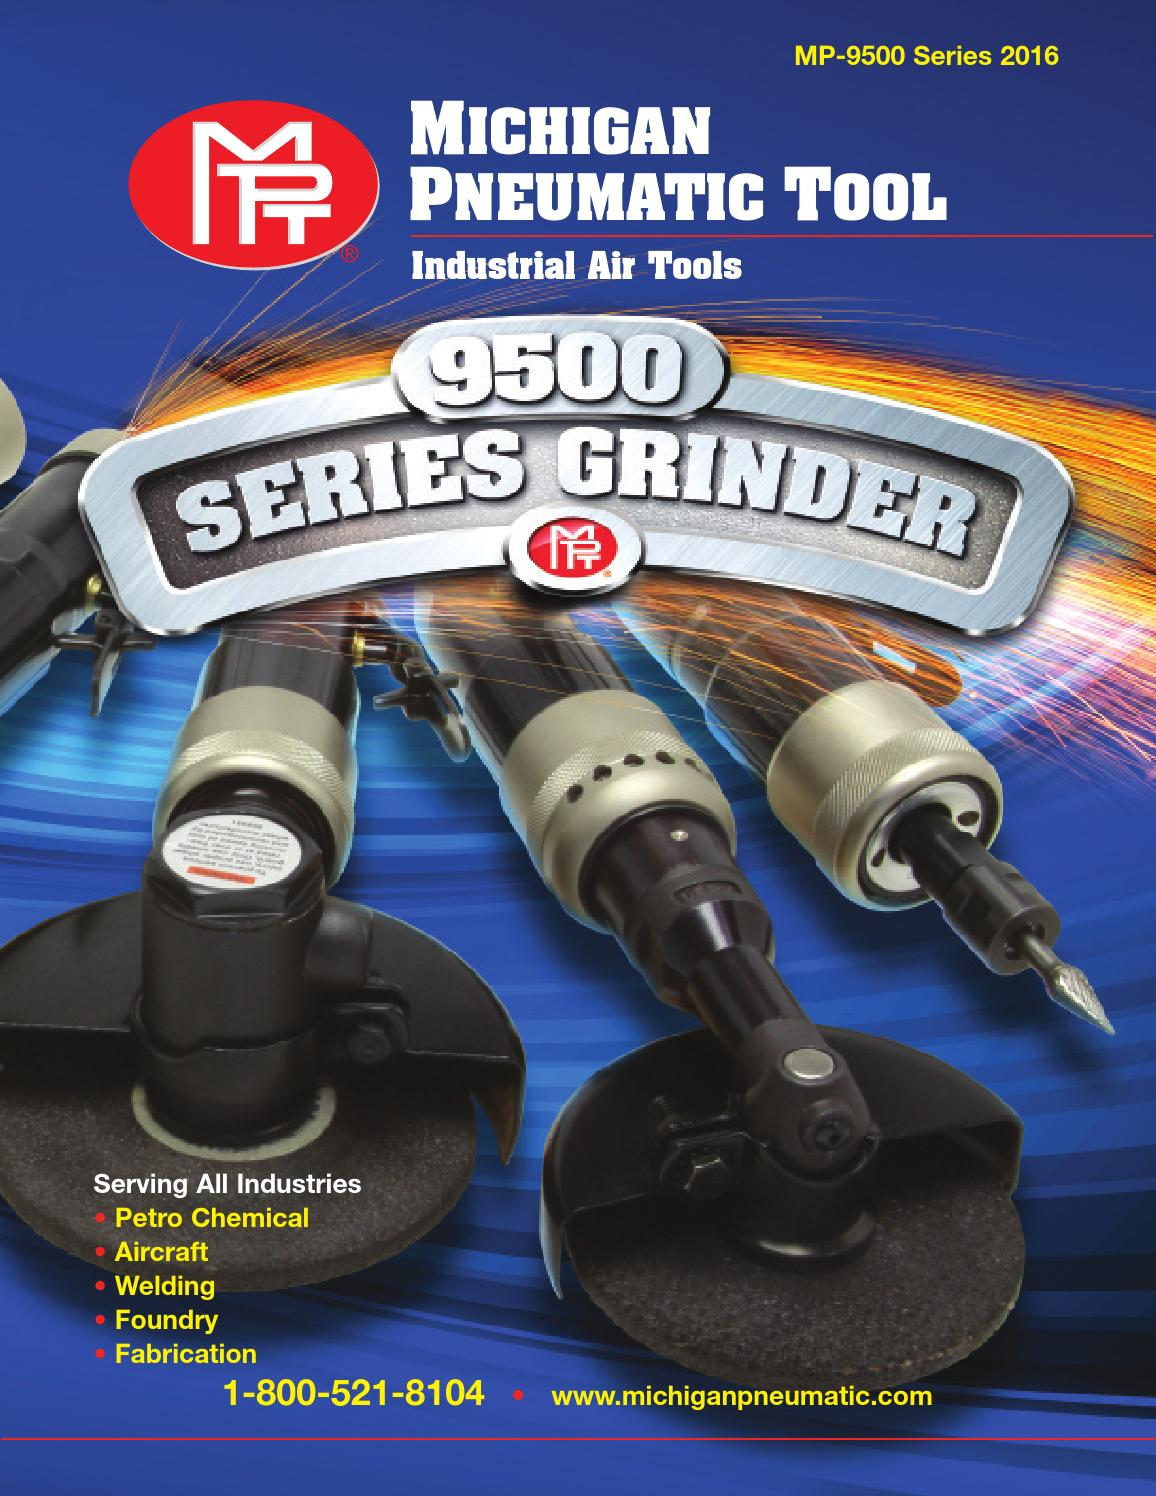 Mpt 9500 Series Flyer By Michigan Pneumatic Tool Inc Issuu